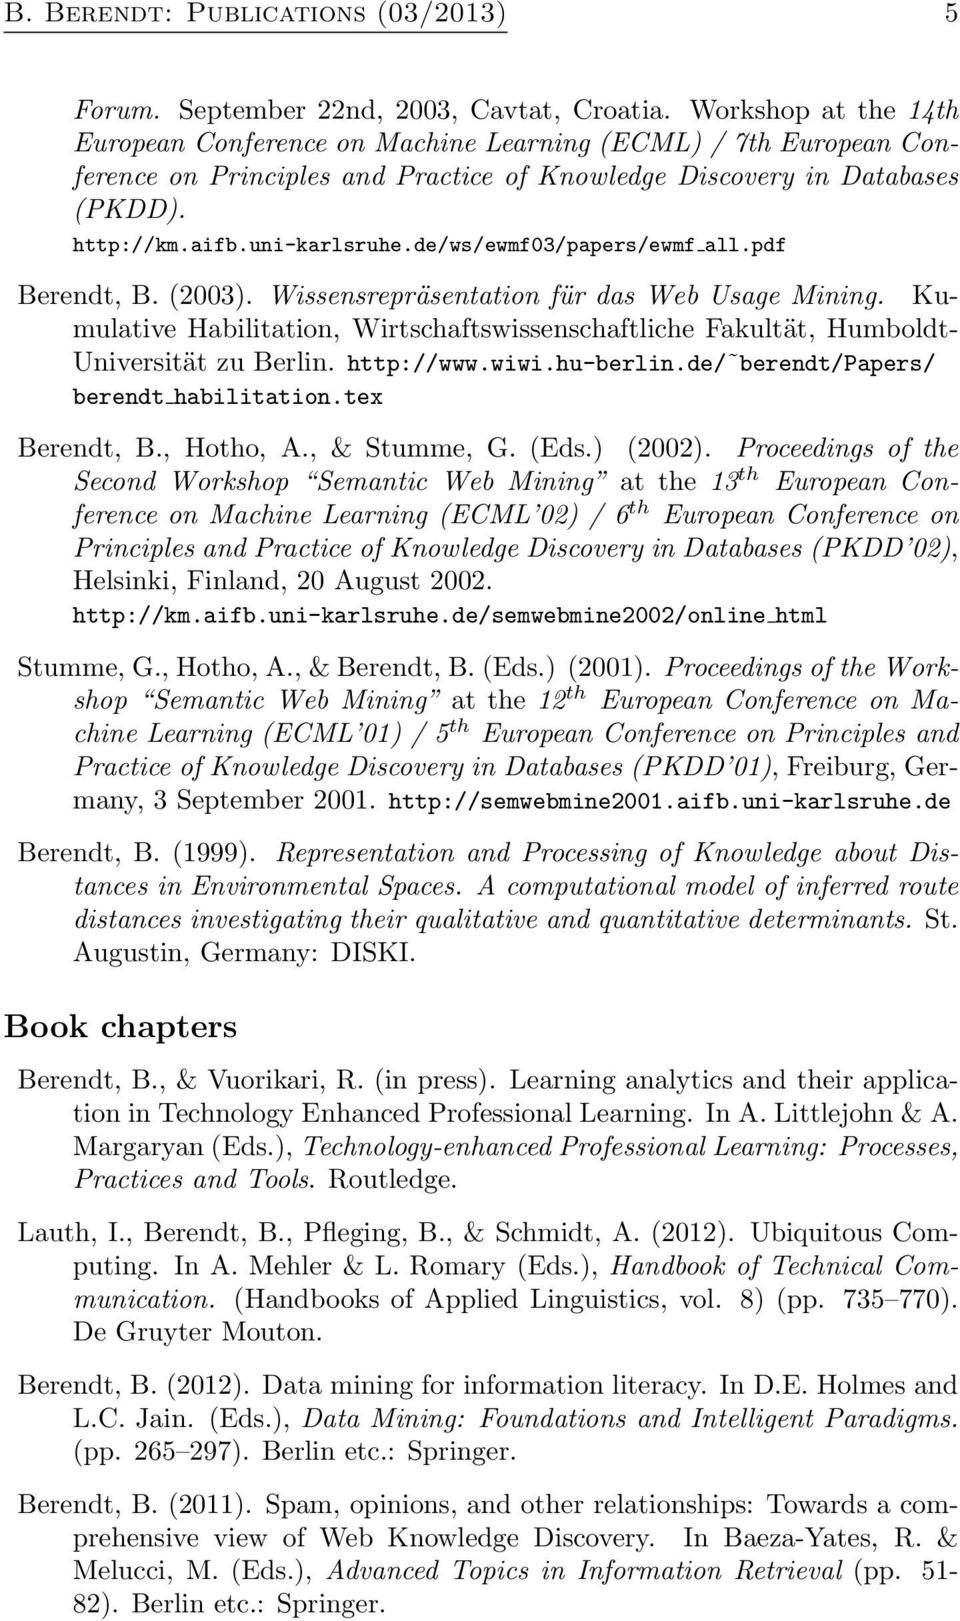 de/ws/ewmf03/papers/ewmf all.pdf Berendt, B. (2003). Wissensrepräsentation für das Web Usage Mining. Kumulative Habilitation, Wirtschaftswissenschaftliche Fakultät, Humboldt- Universität zu Berlin.